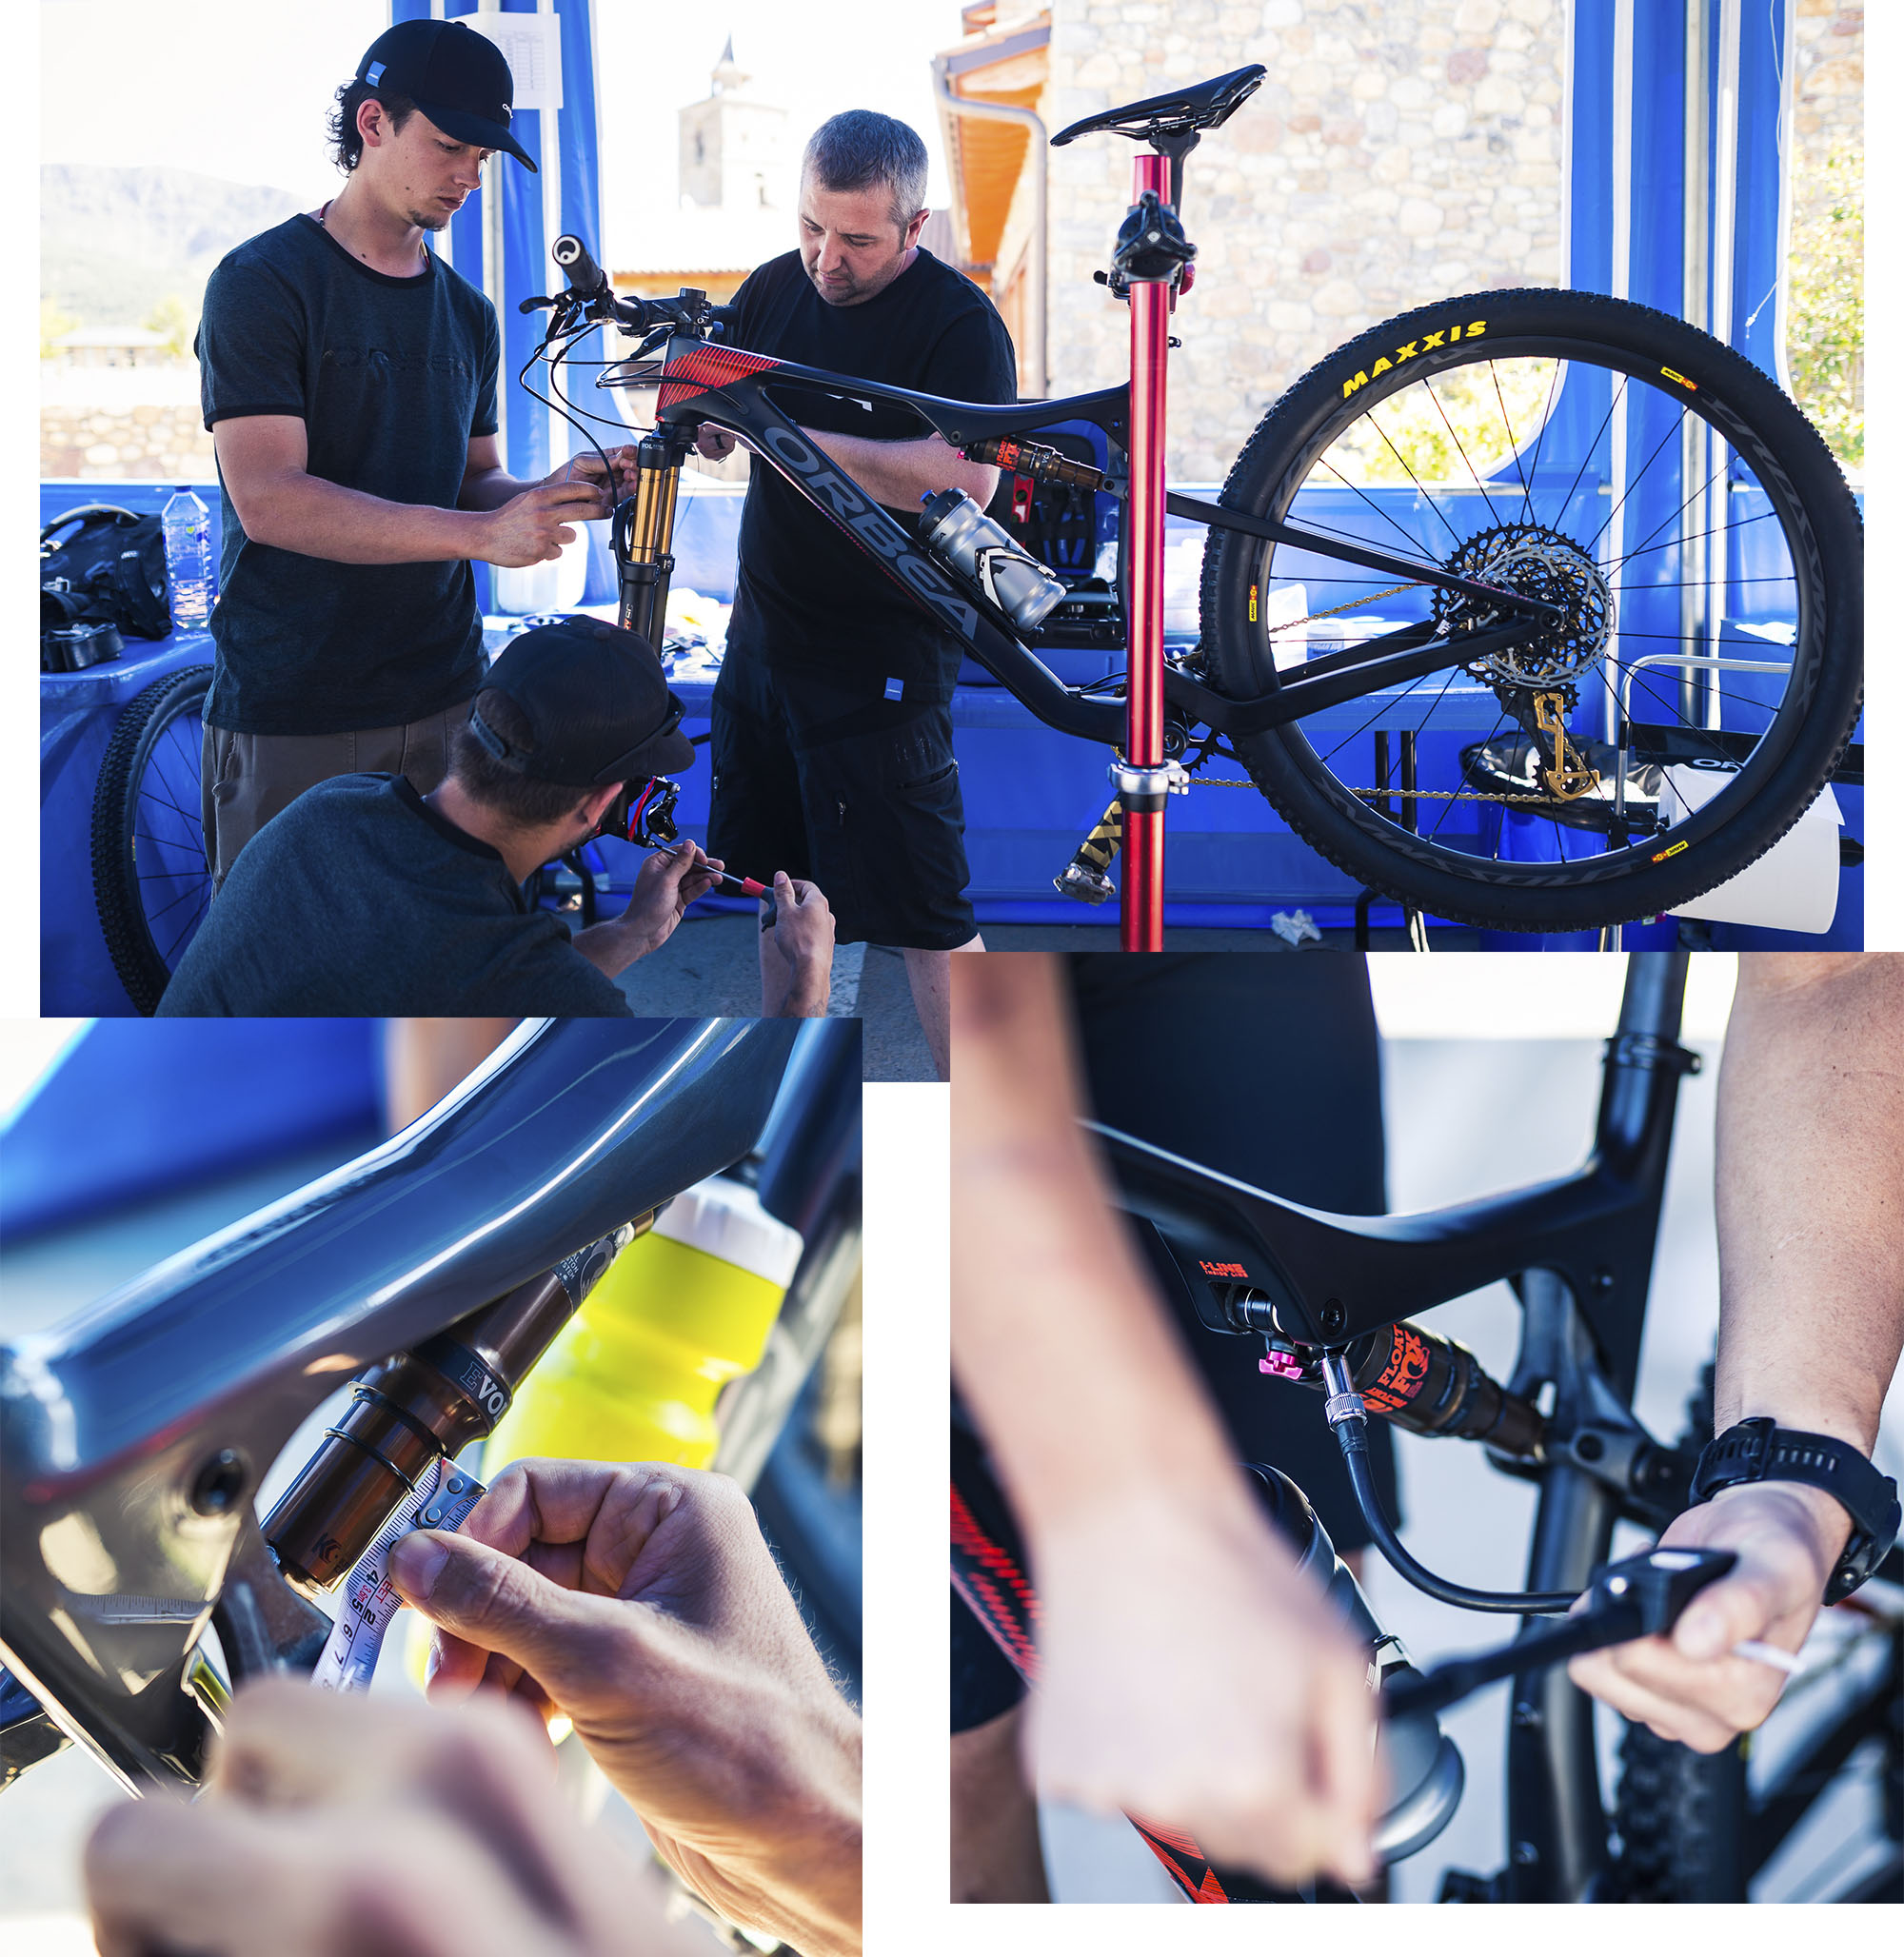 421fda81a16 We want you to discover for yourself the experiences and sensations locked  inside each model, the technology that's built into some of the best bikes  on the ...